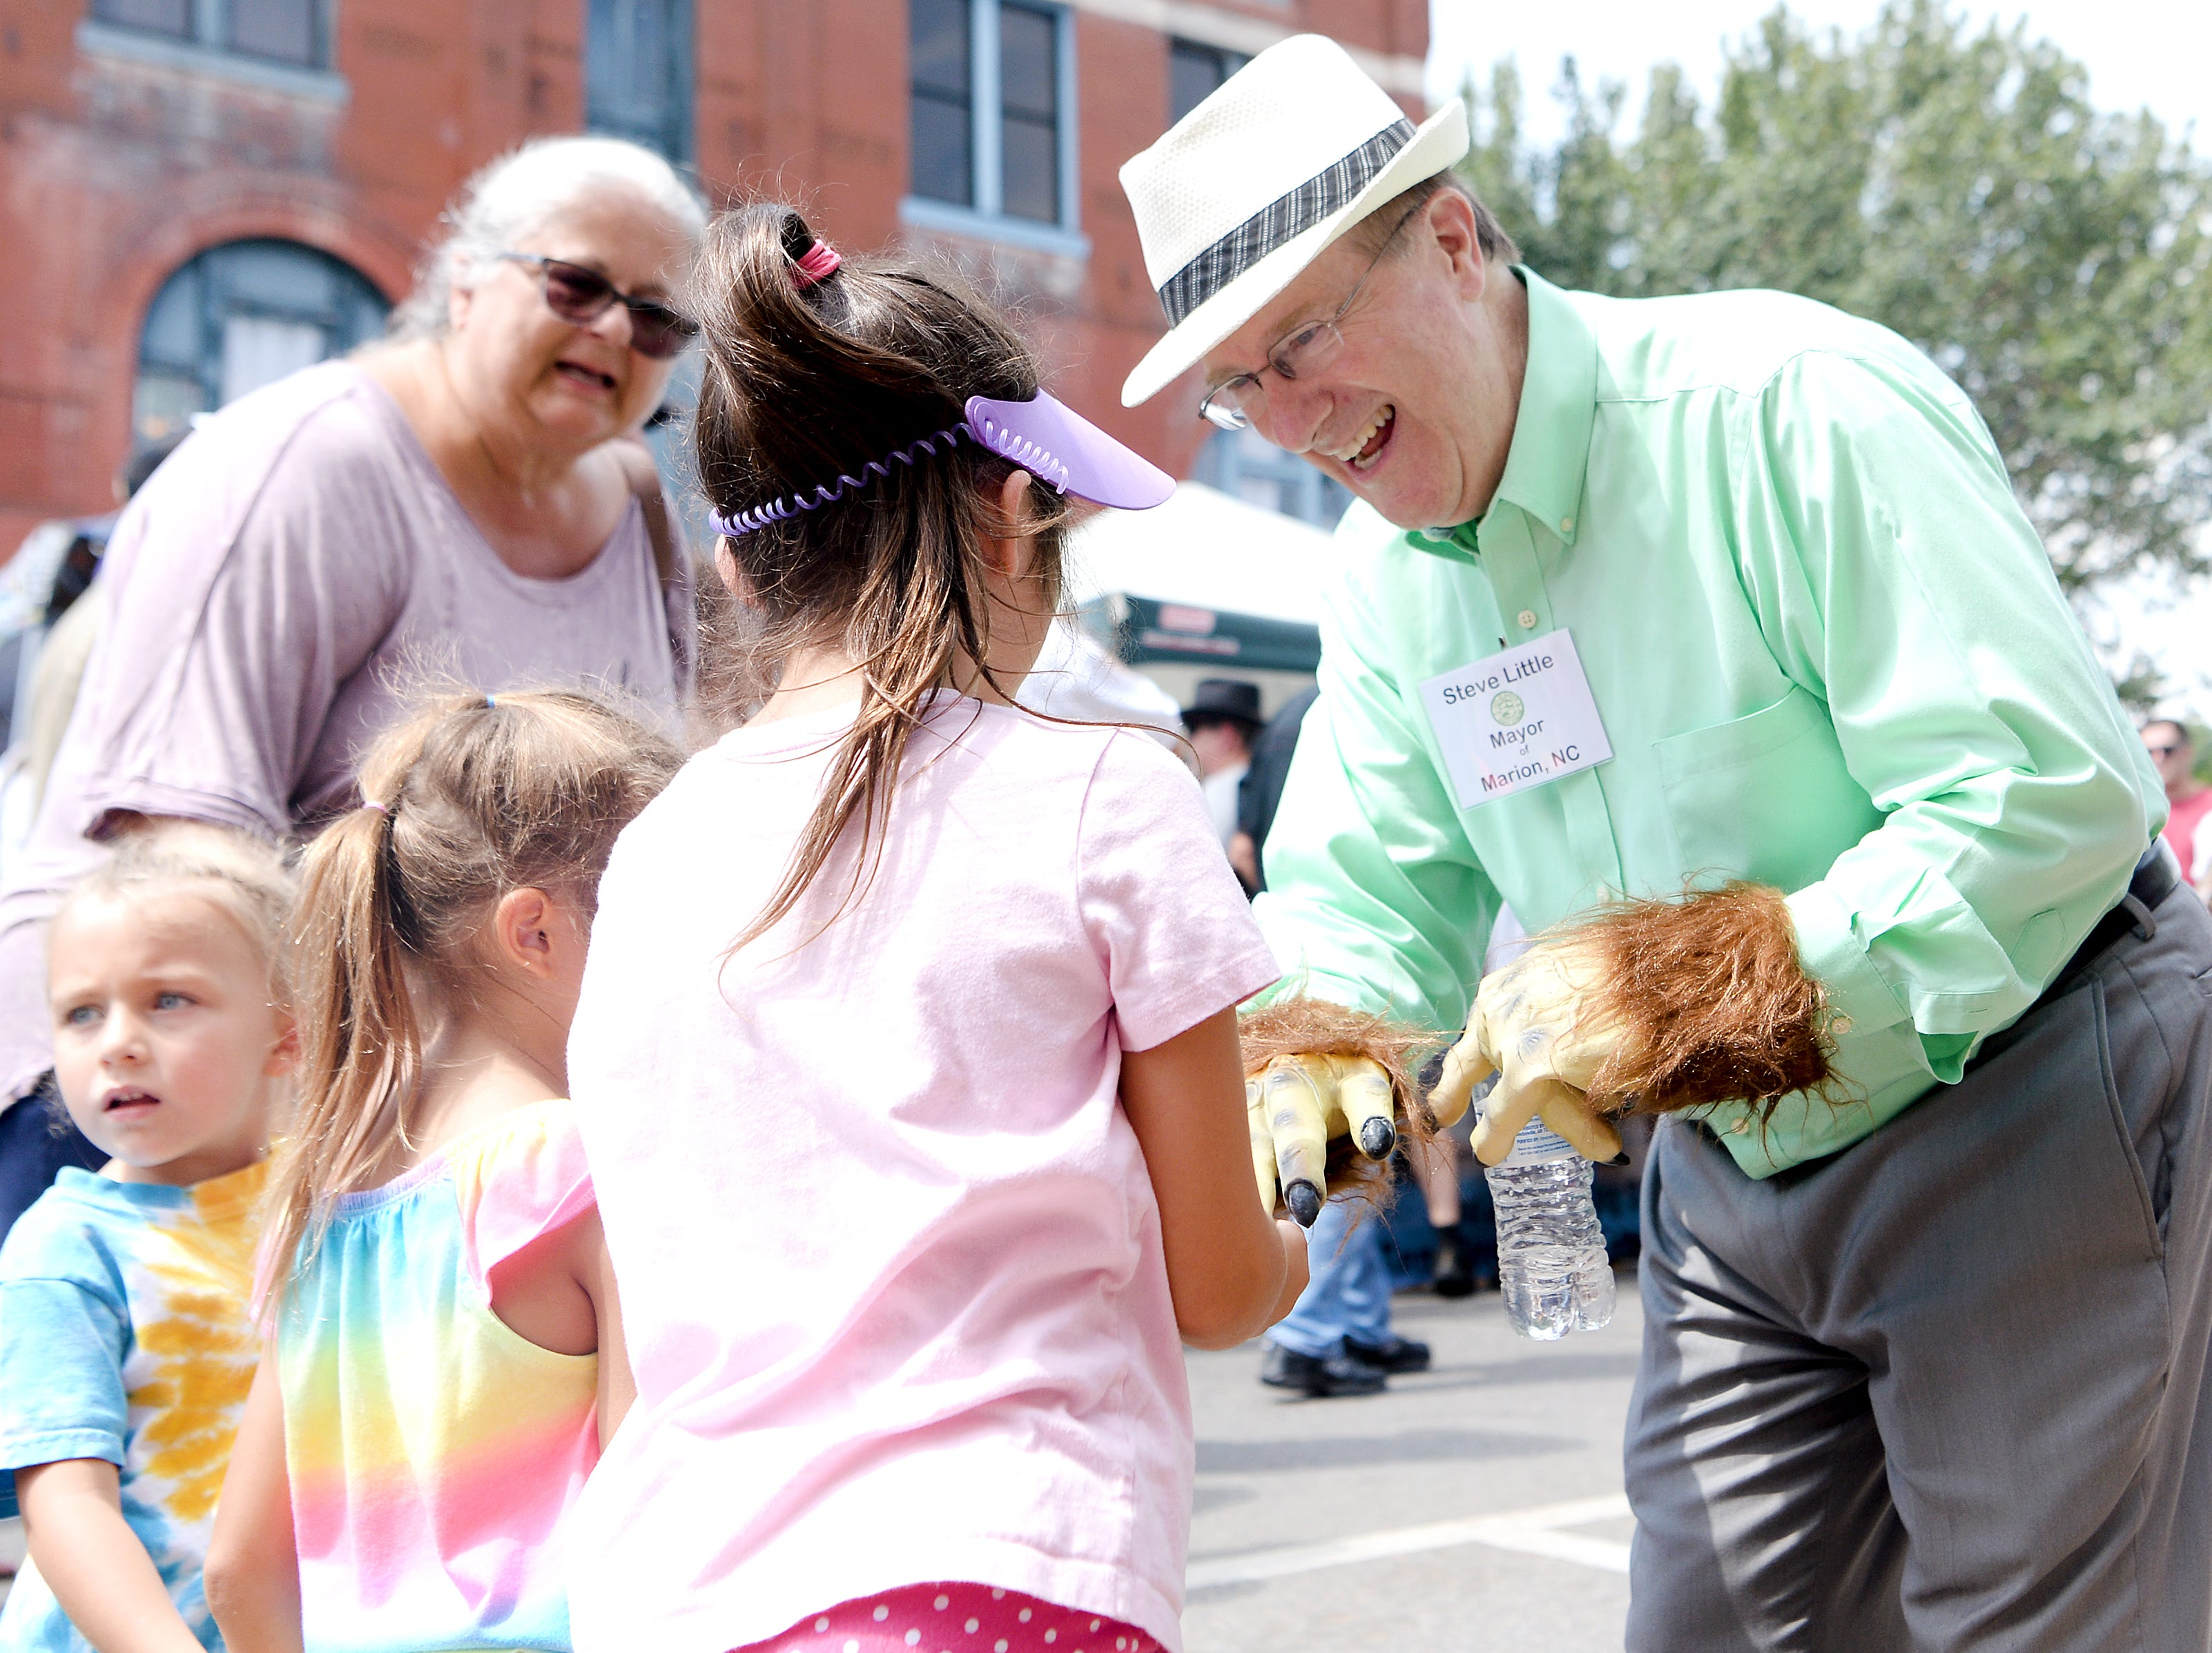 Steve Little, the Mayor of Marion, greets children with his festival-themed hands during the first ever WNC Bigfoot Festival in Marion on Sept. 8, 2018. Little, who estimated the festival received an unplanned for 15,000 visitors said he already has plans to make next year's event better.